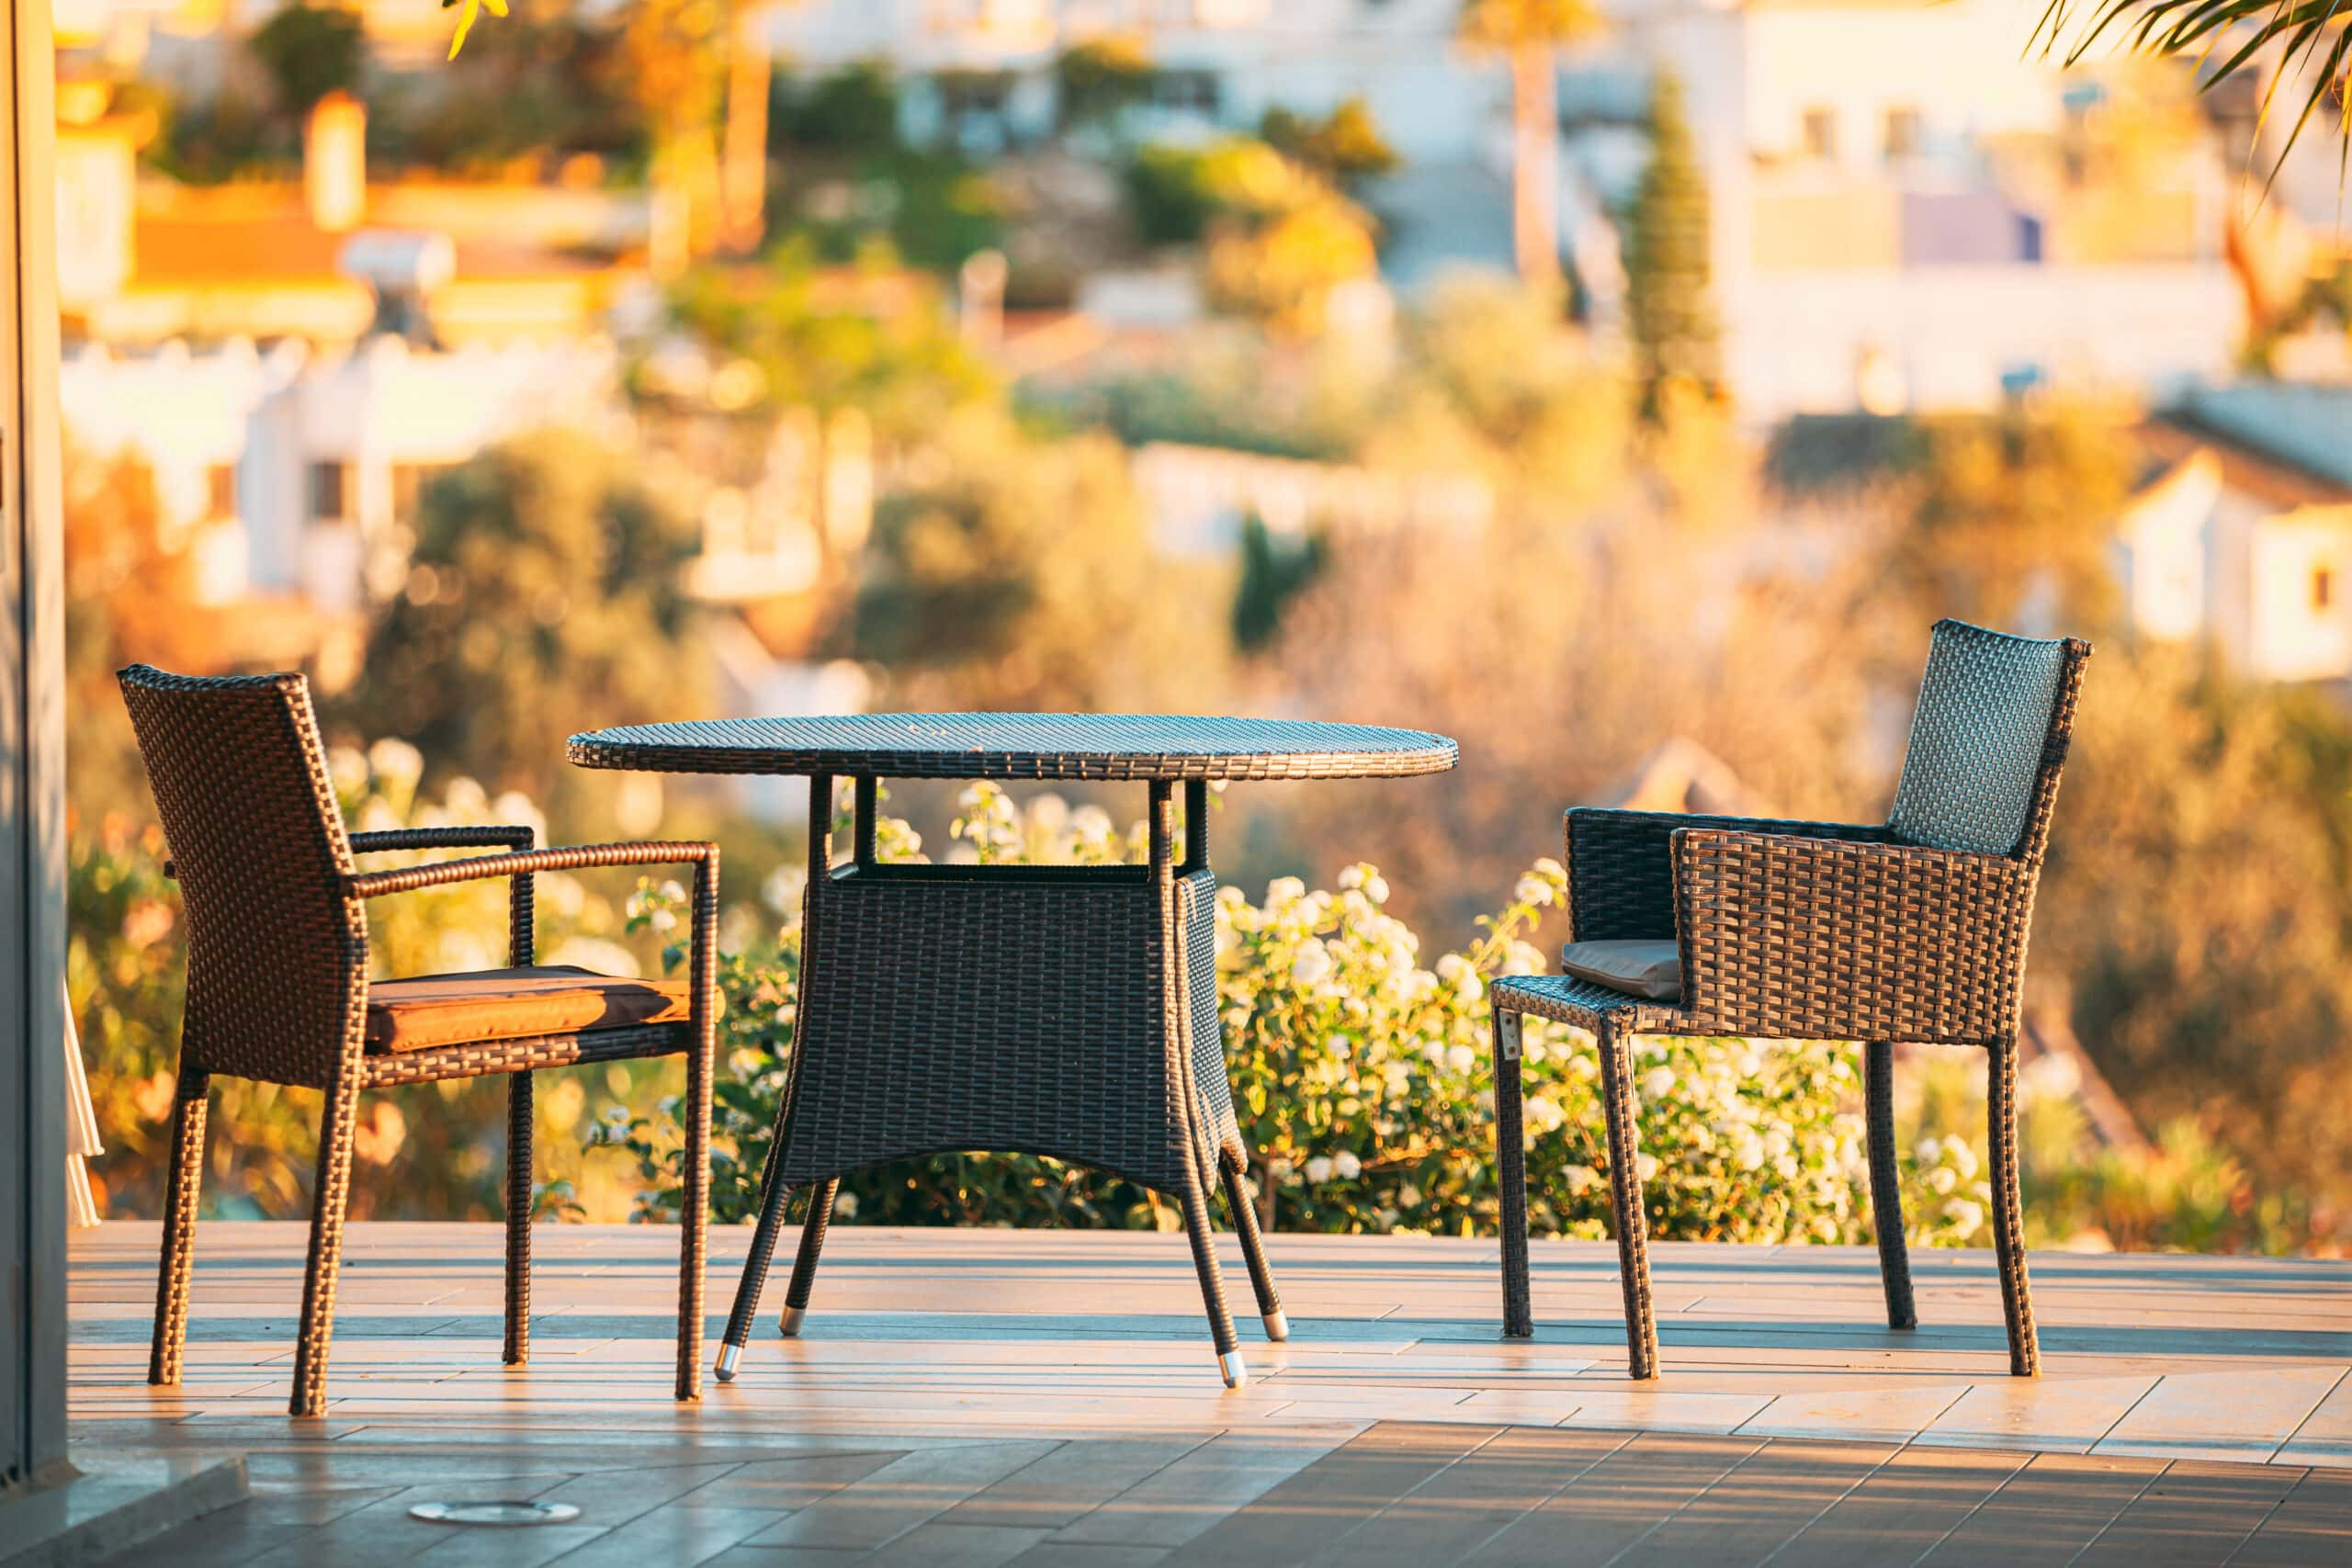 Is wicker good for outdoor furniture?